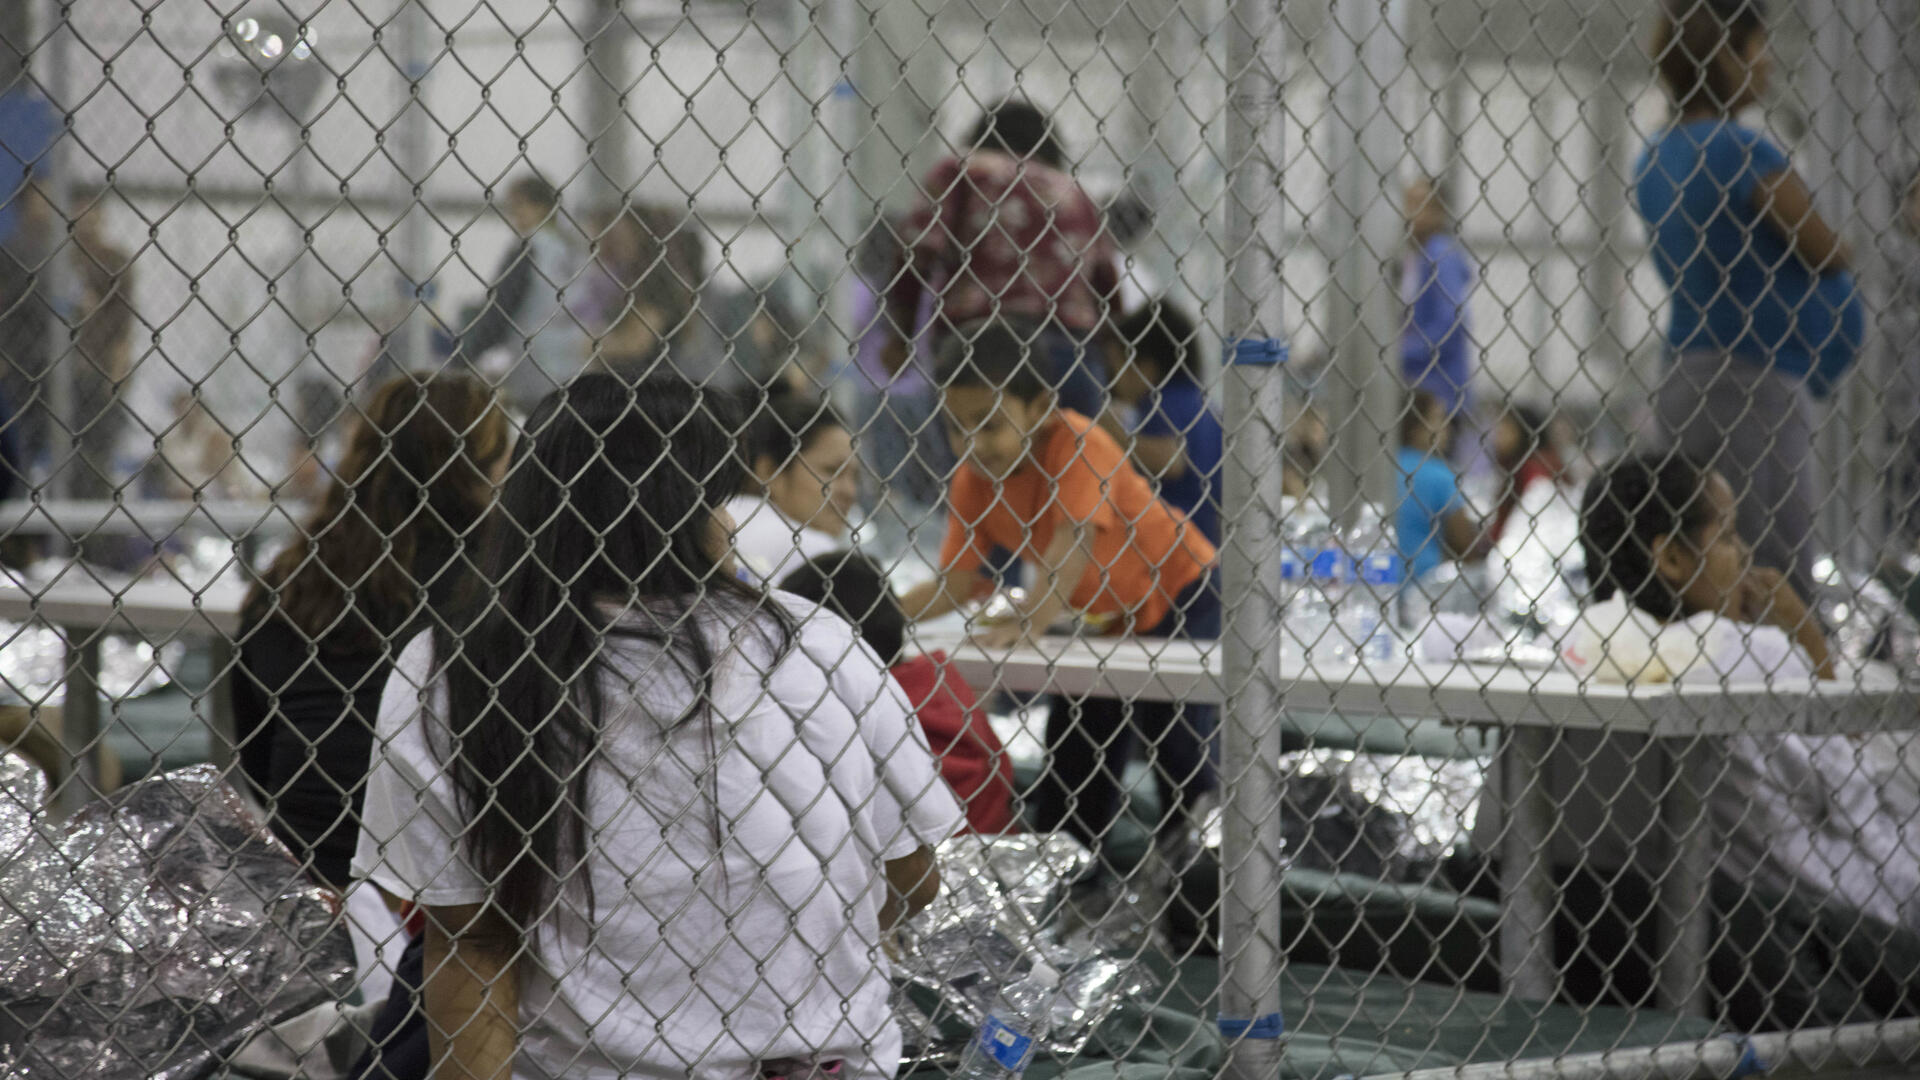 Families detained behind a chain-link fence inside a U.S. Border Patrol facility in Texas